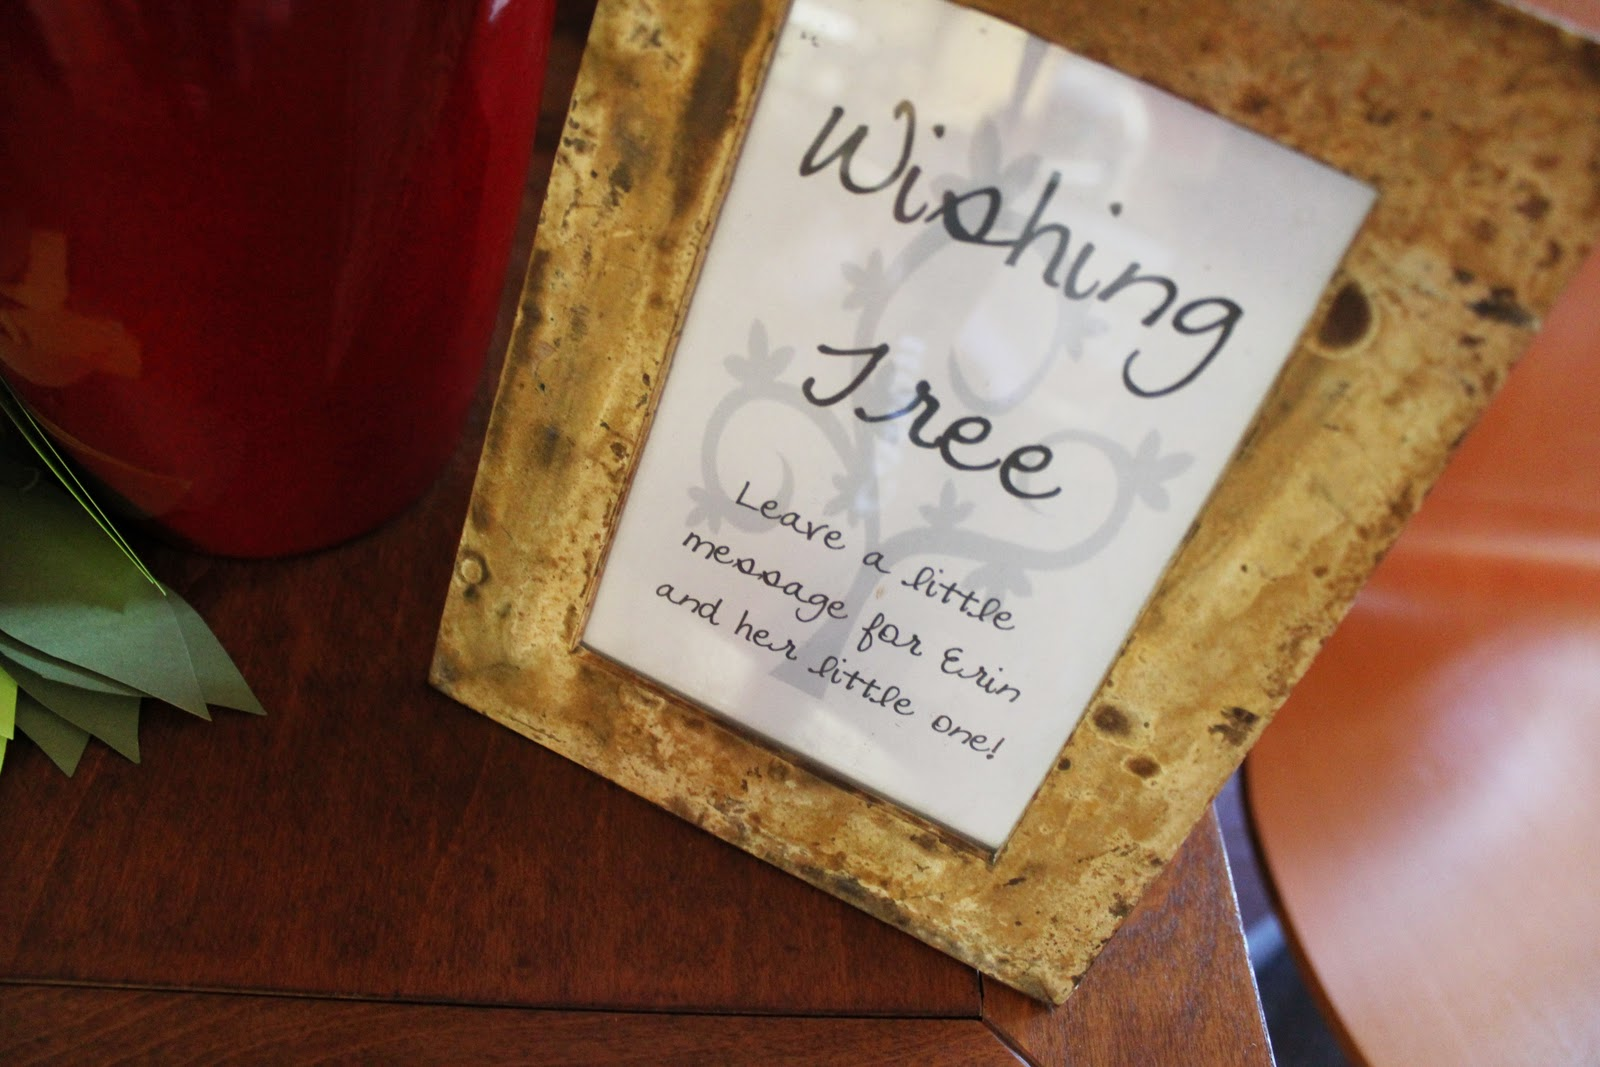 Baby Shower Wish Tree Poem http://iheartlaughing.blogspot.com/2010/10/baby-shower-inspired-by-woodland-forest.html